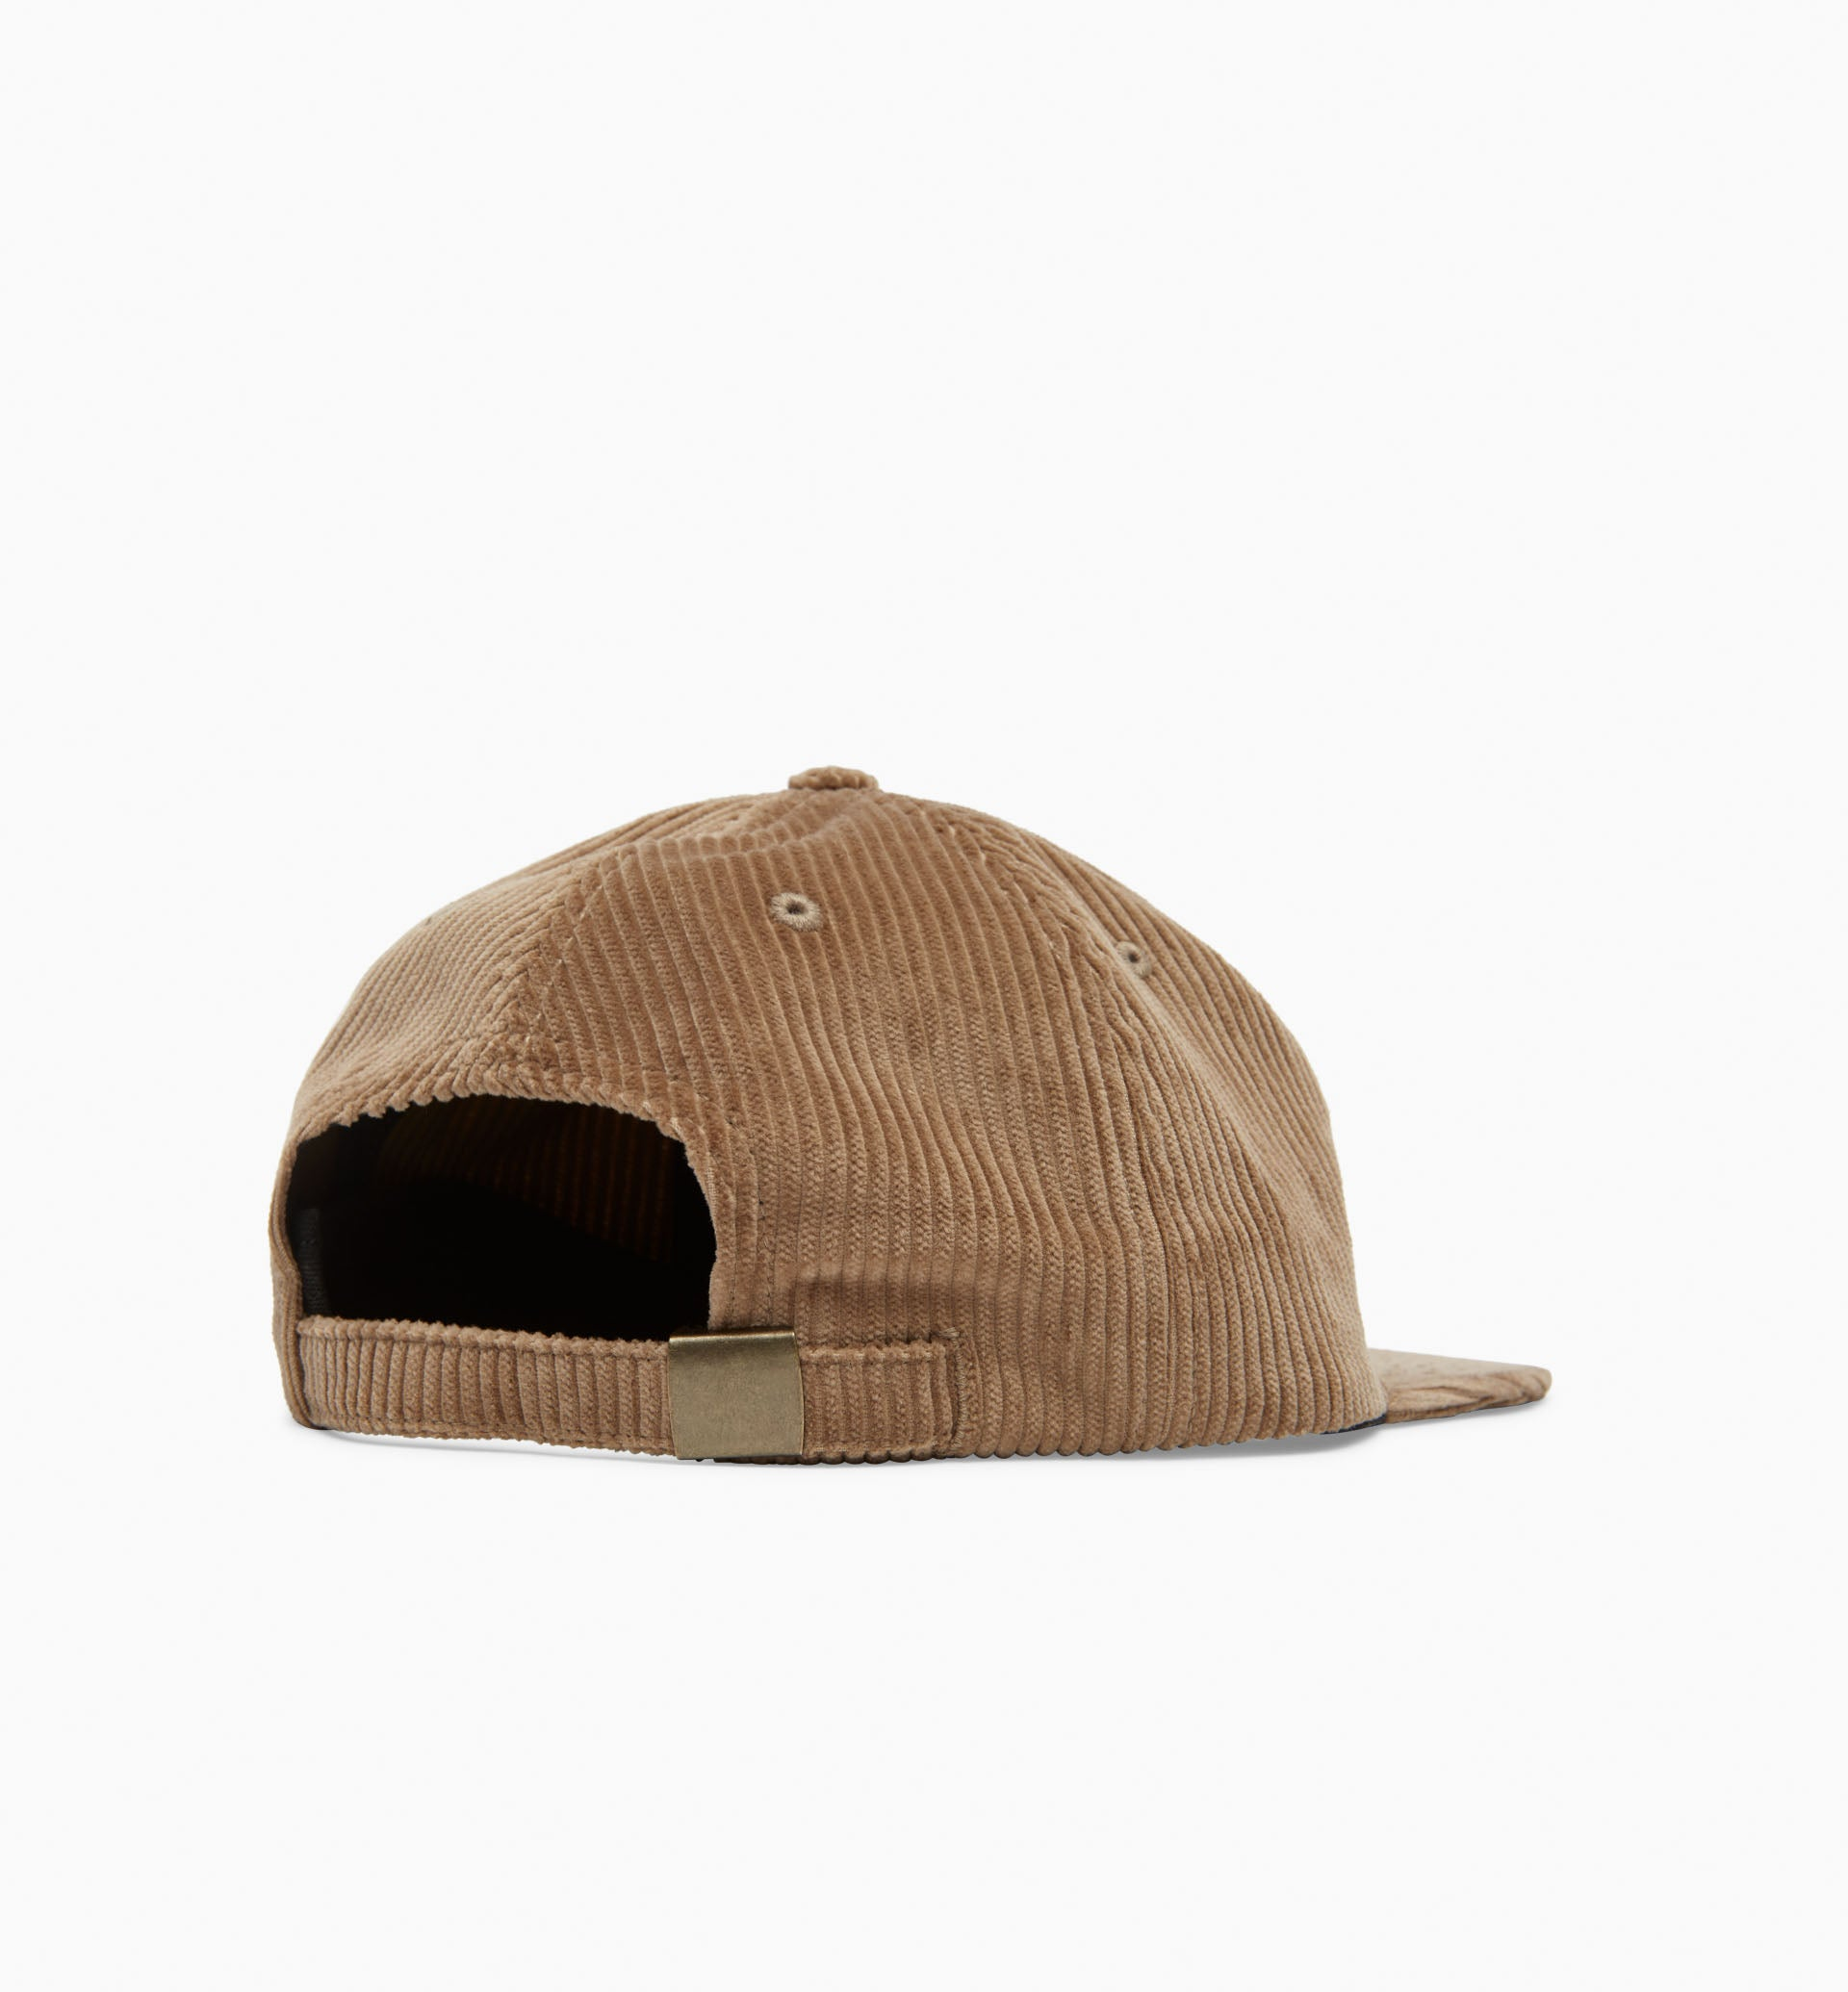 Parra - 6 panel hat fonts are us